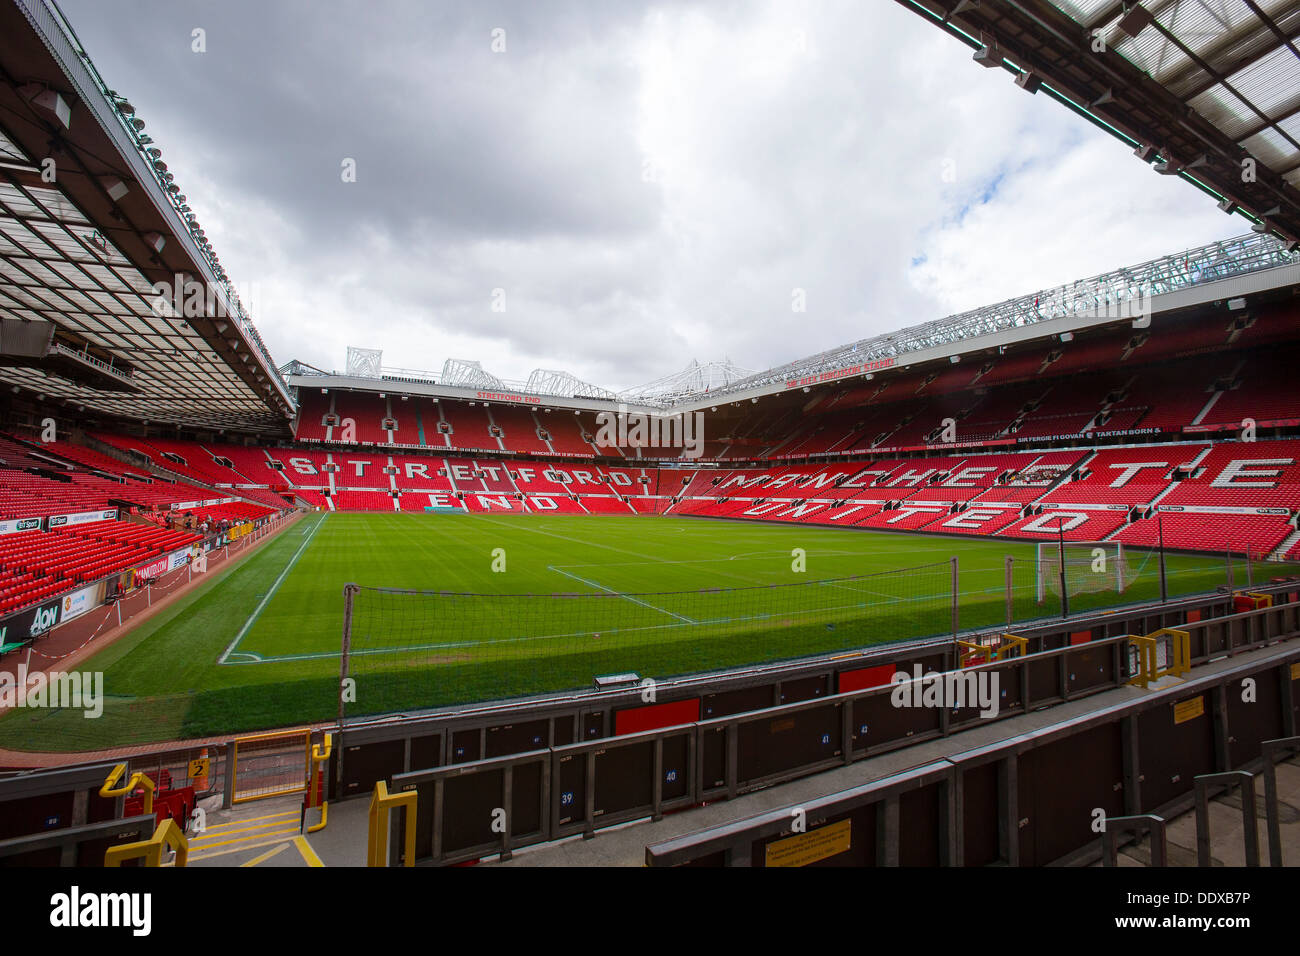 Old Trafford Stadium, Manchester United's football ground taken from the disabled stand - Stock Image